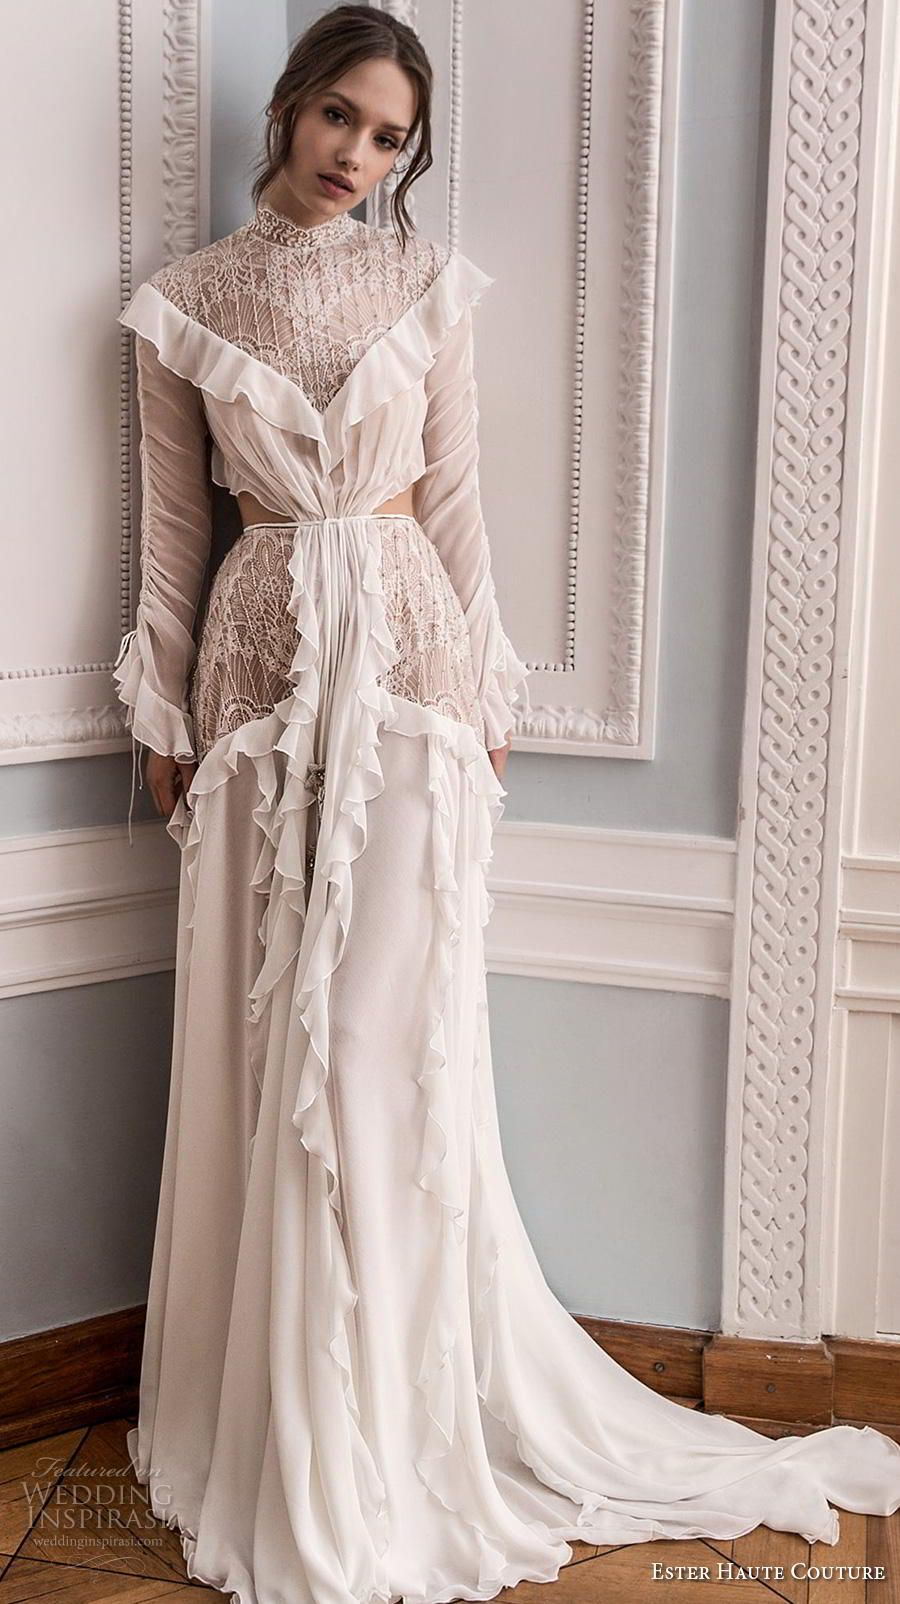 d1066f4eedbc6 ester haute couture 2019 bridal long sleeves high neck full embellishment  vintage modified a line wedding